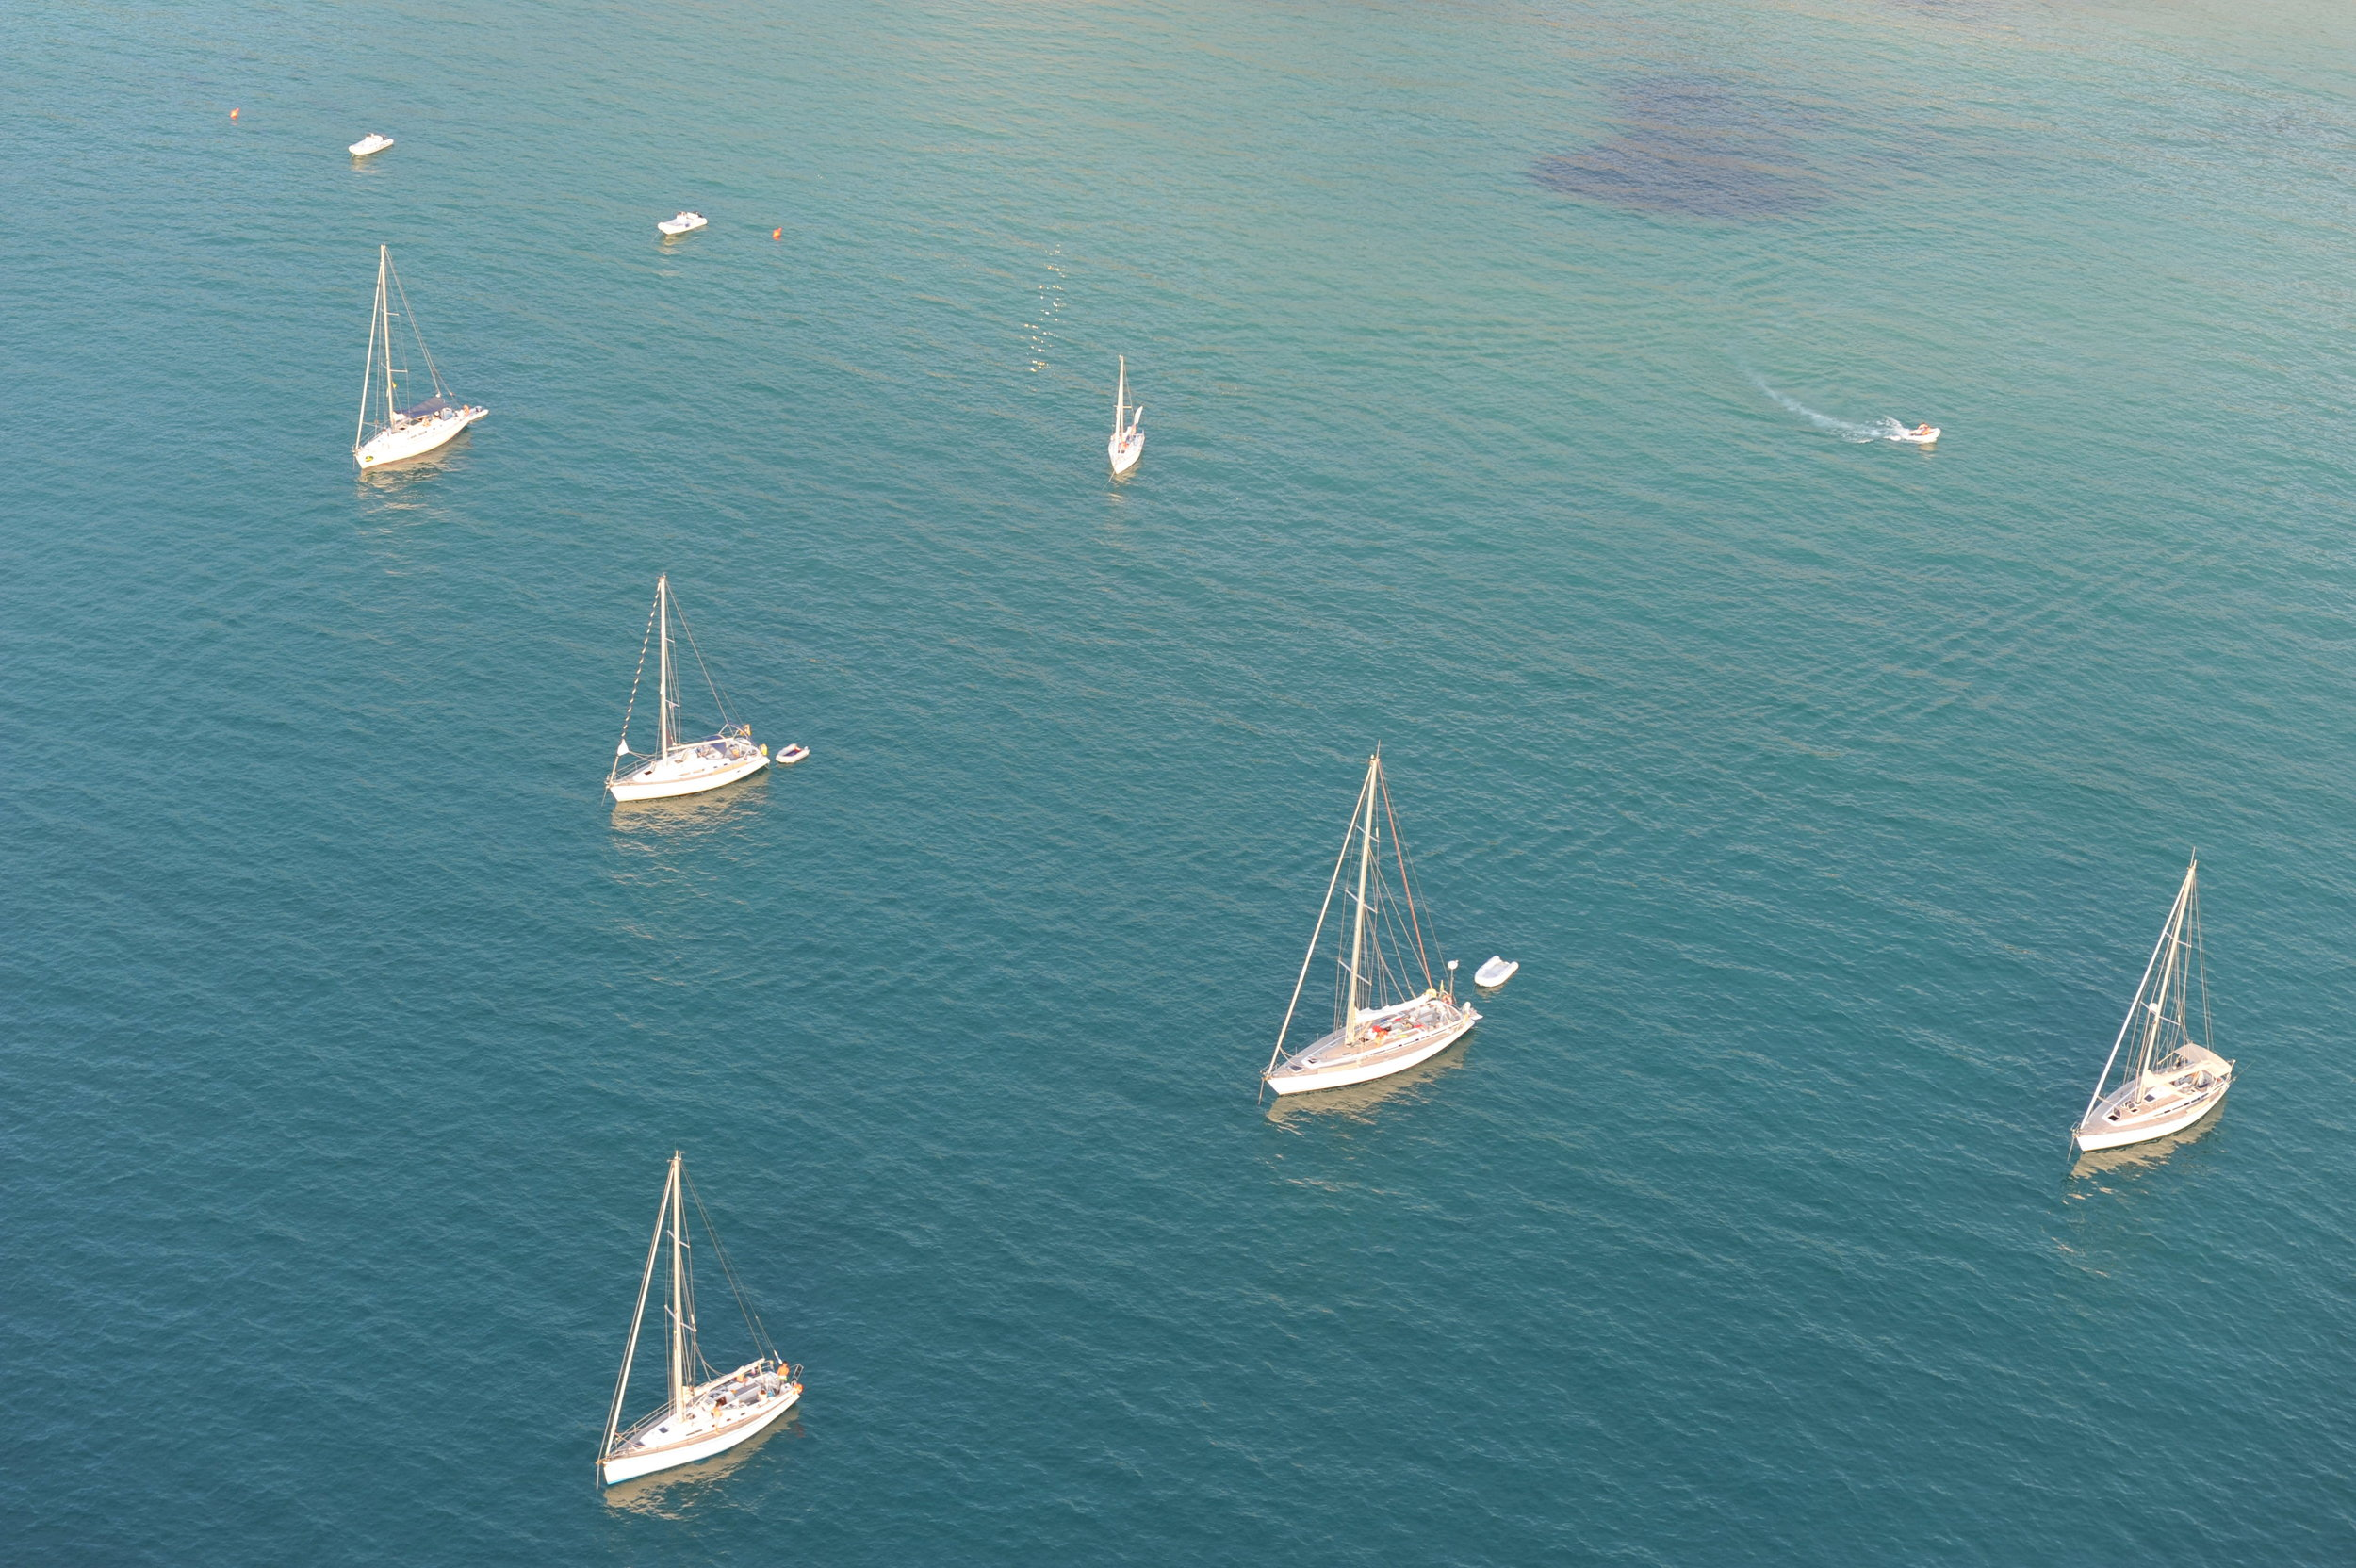 Why not enjoy a day out sailing?